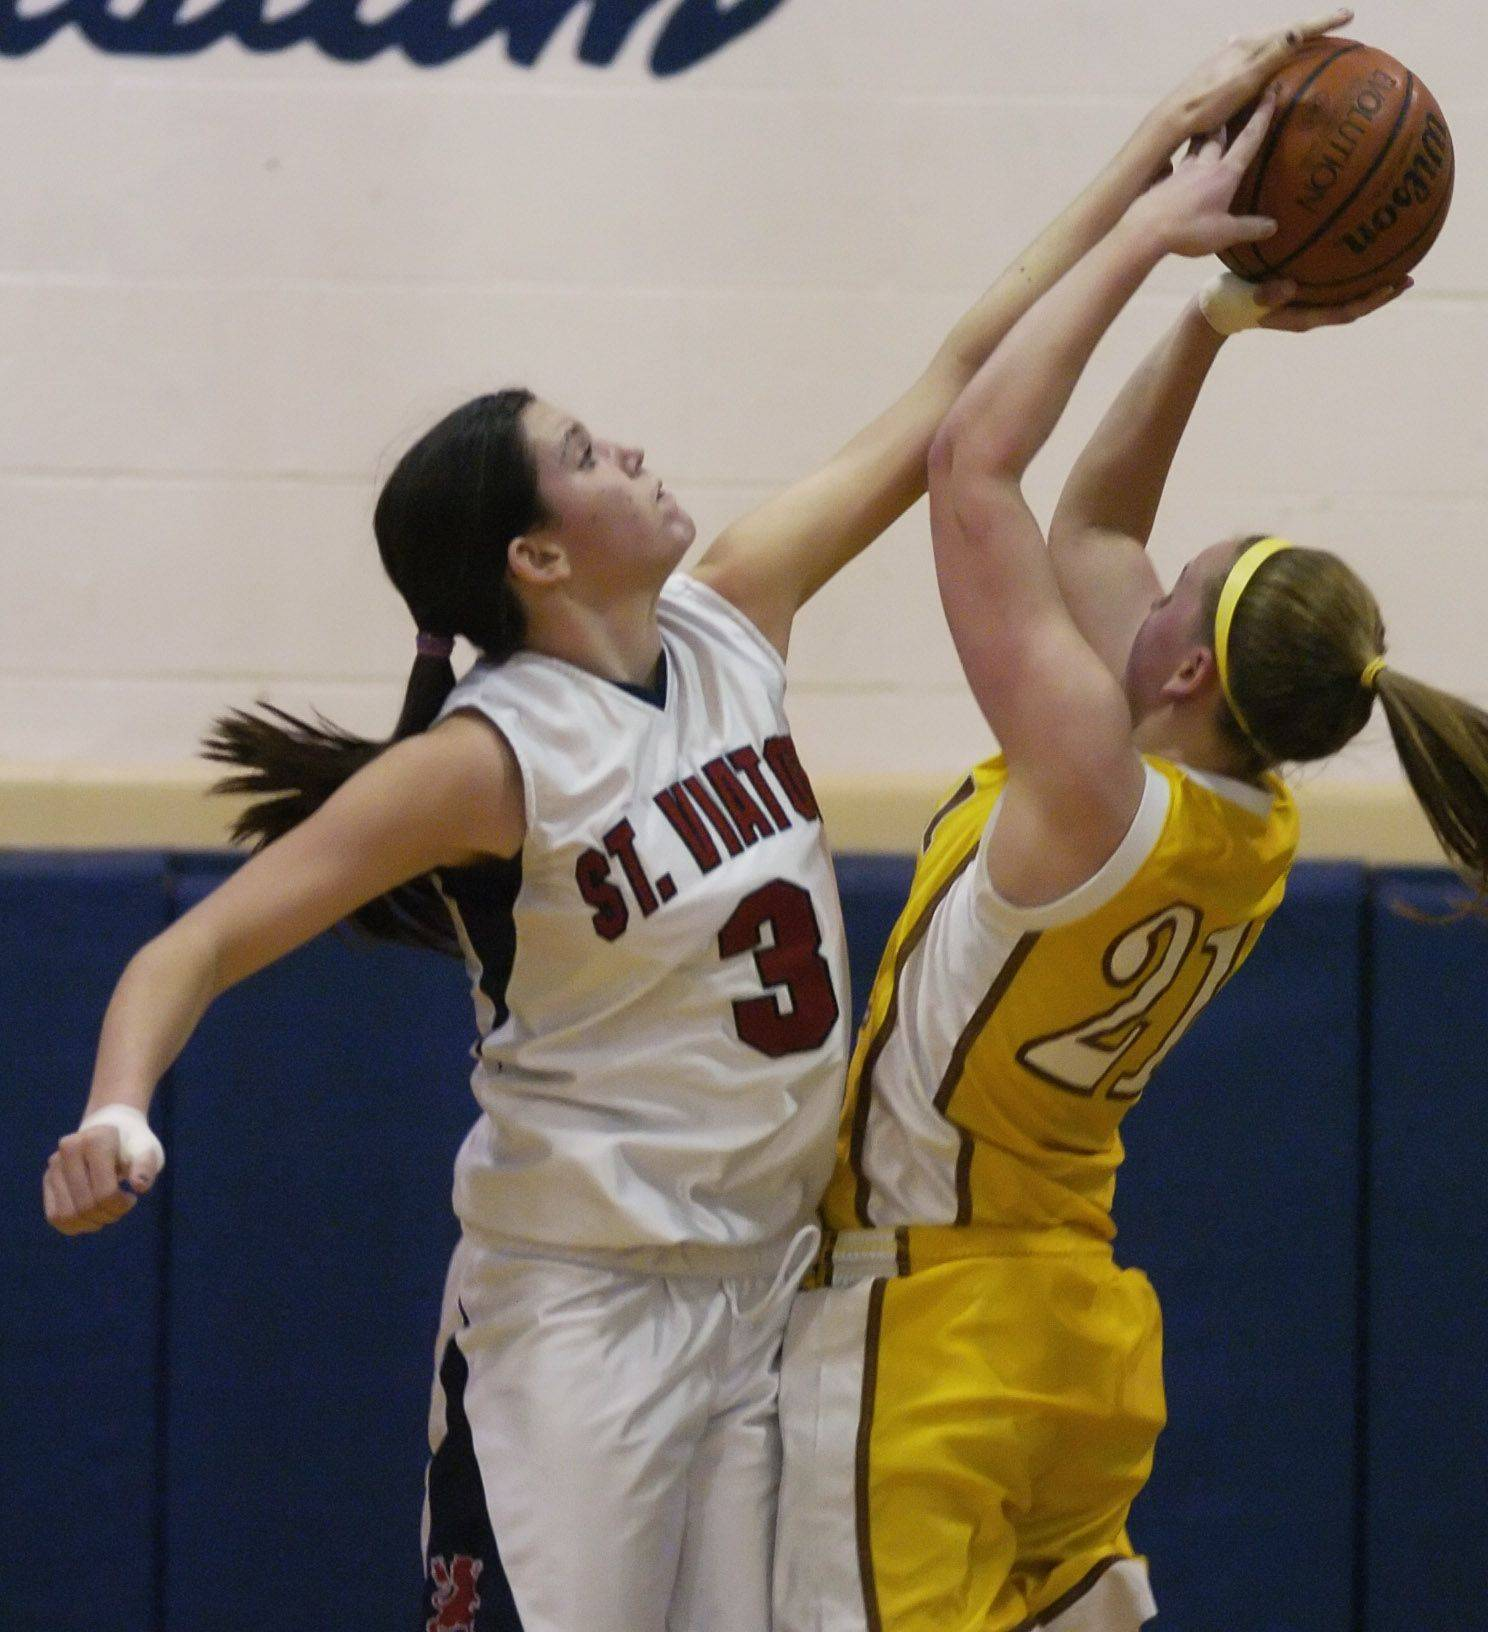 St. Viator's Lauren Rooney blocks a shot by Carmel's Sarah McHugh.